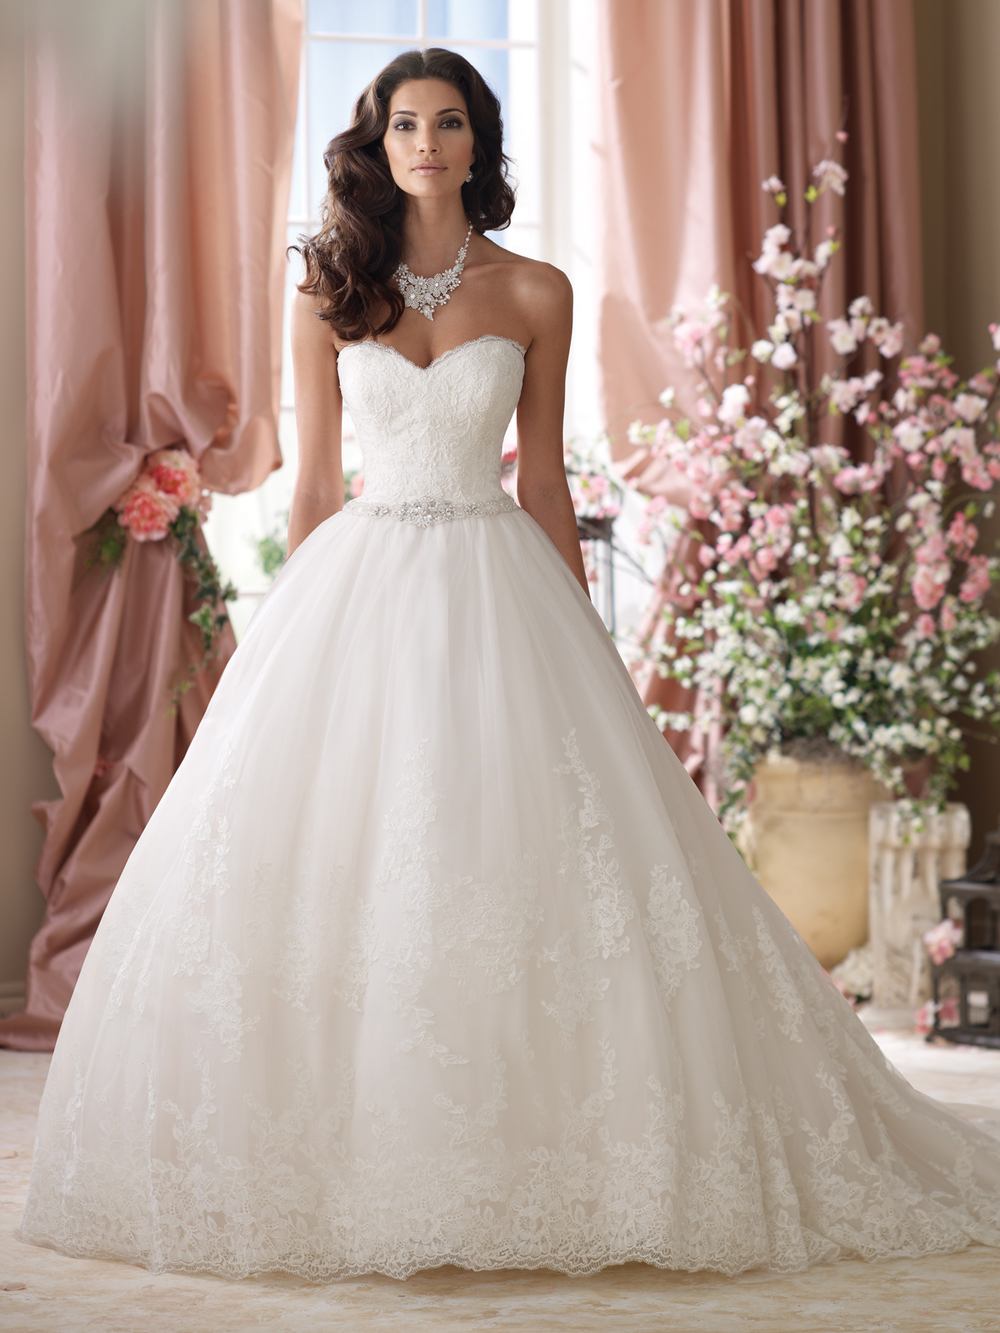 114289_wedding_dresses_20141.jpg